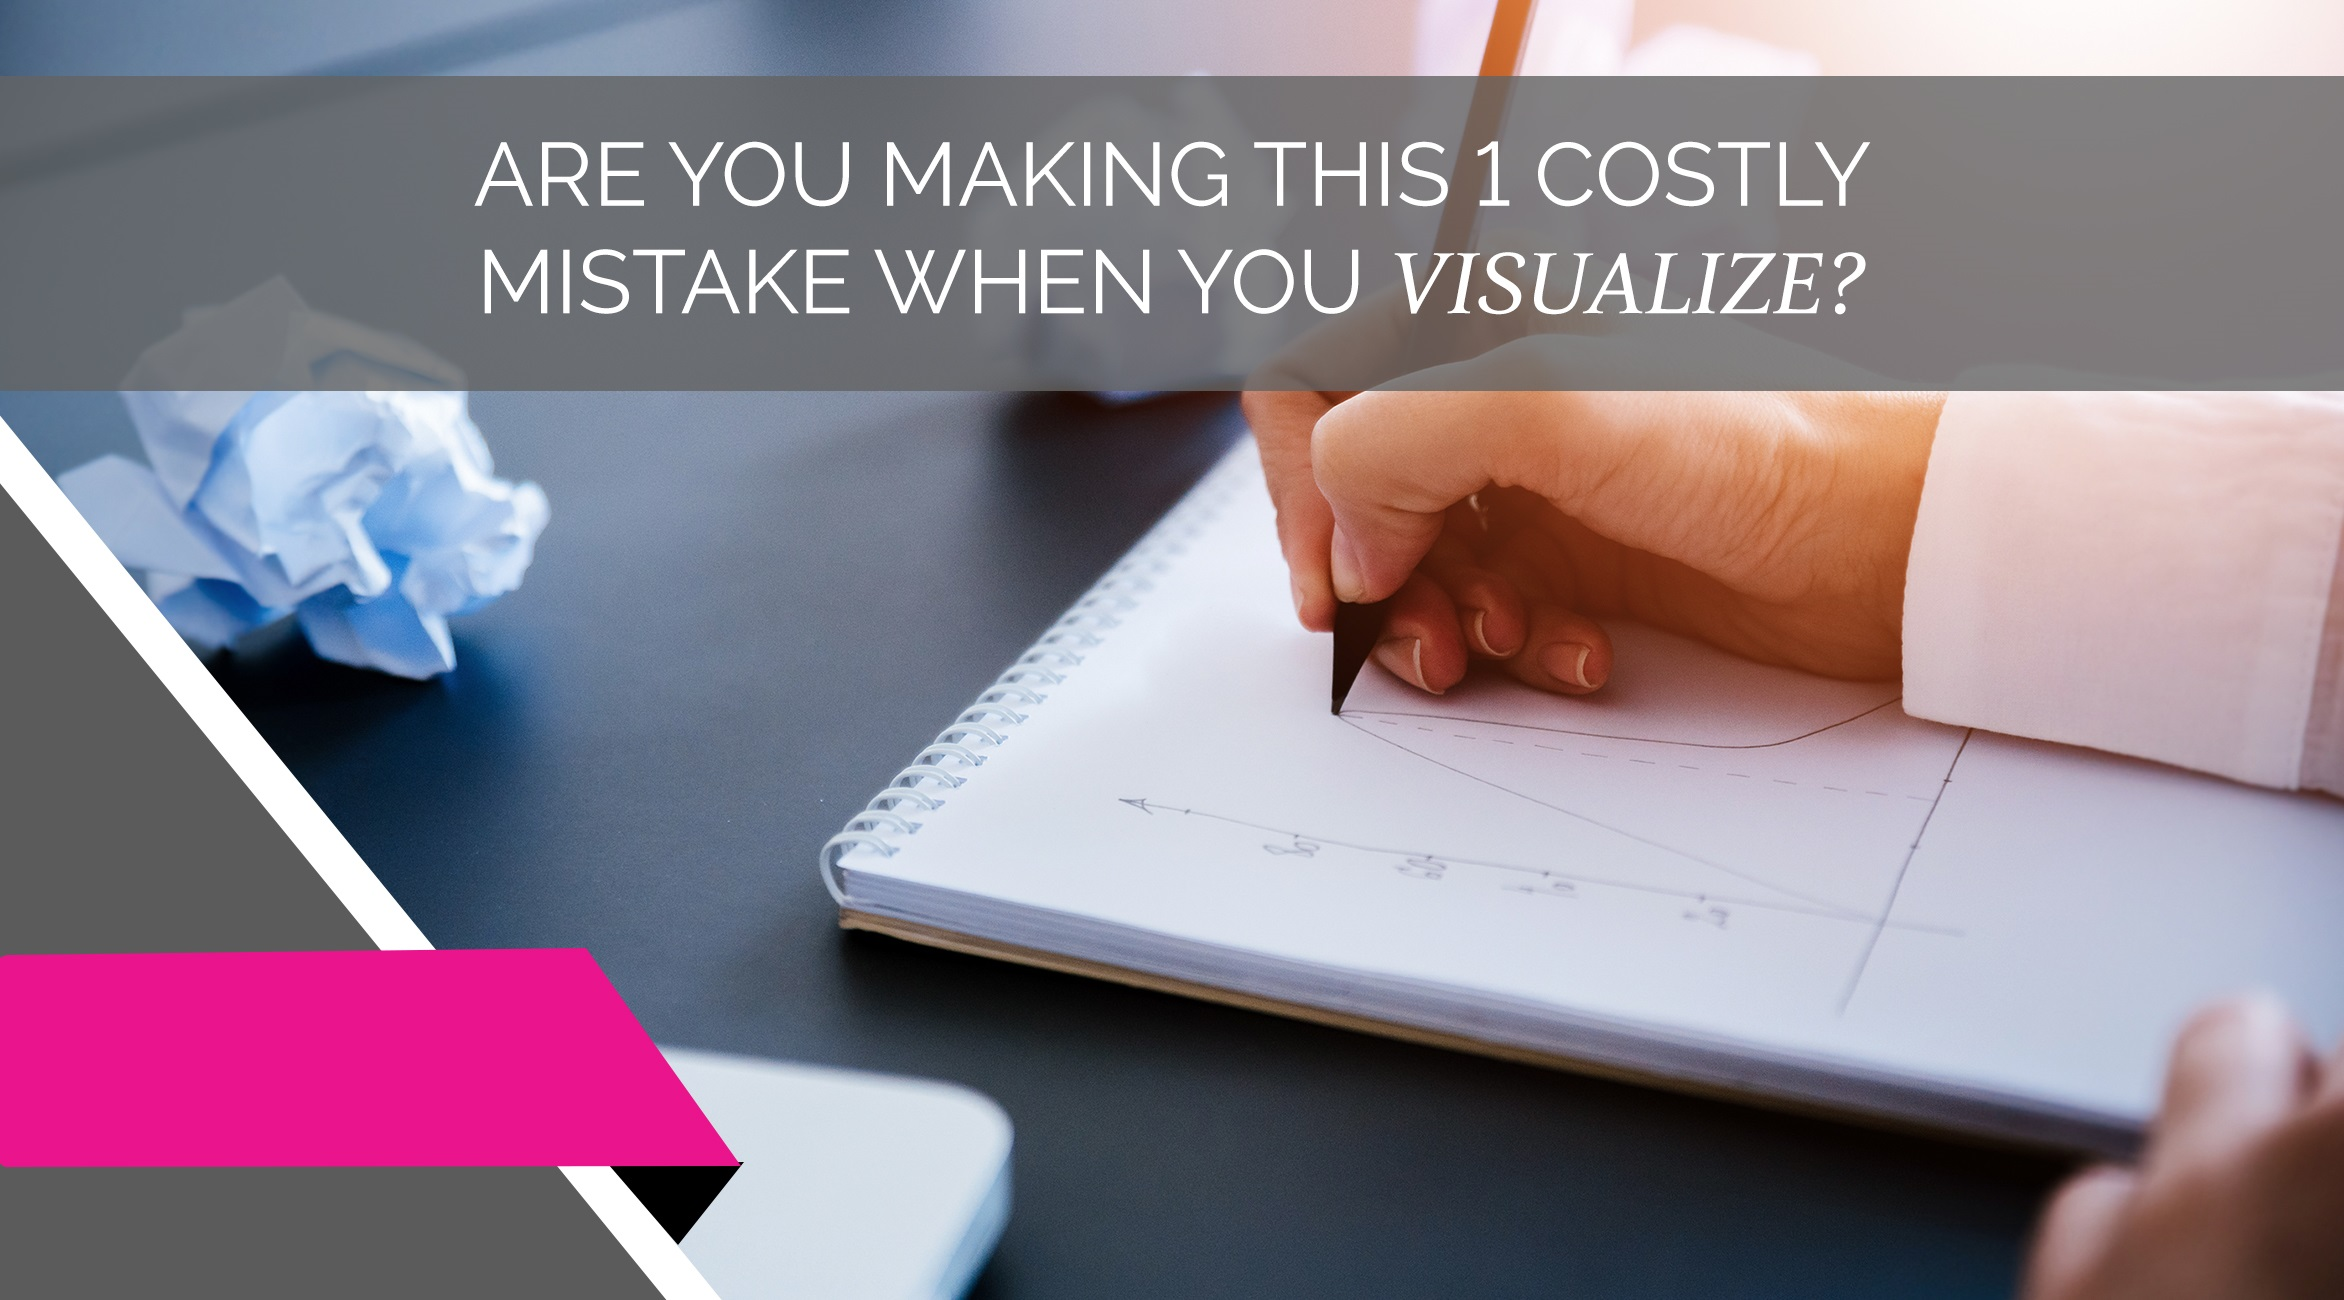 Are You Making This 1 Costly Mistake When You Visualize